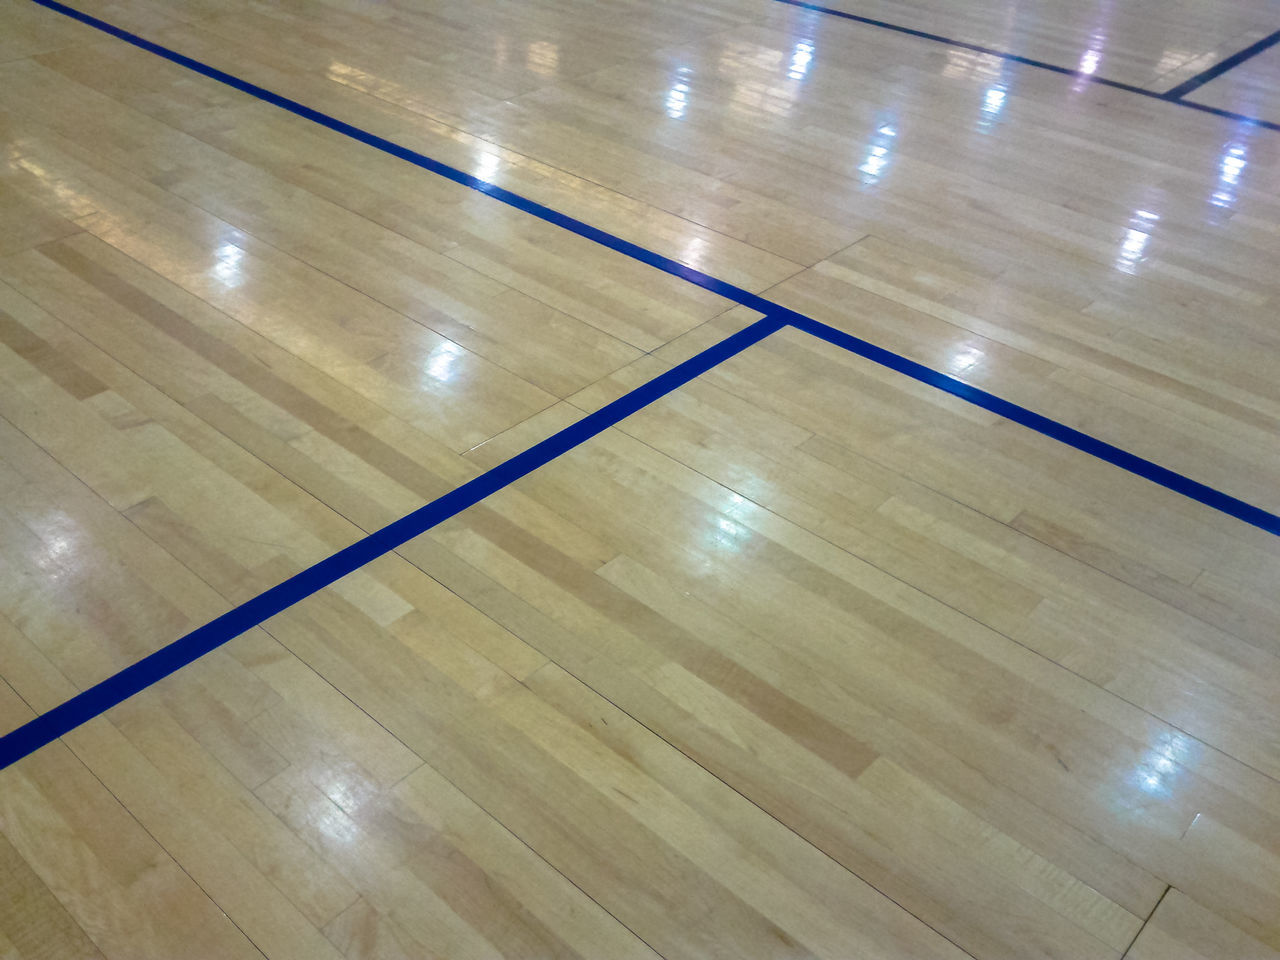 hardwood floor, flooring, indoors, no people, gym, wood - material, backgrounds, hardwood, court, day, close-up, nature